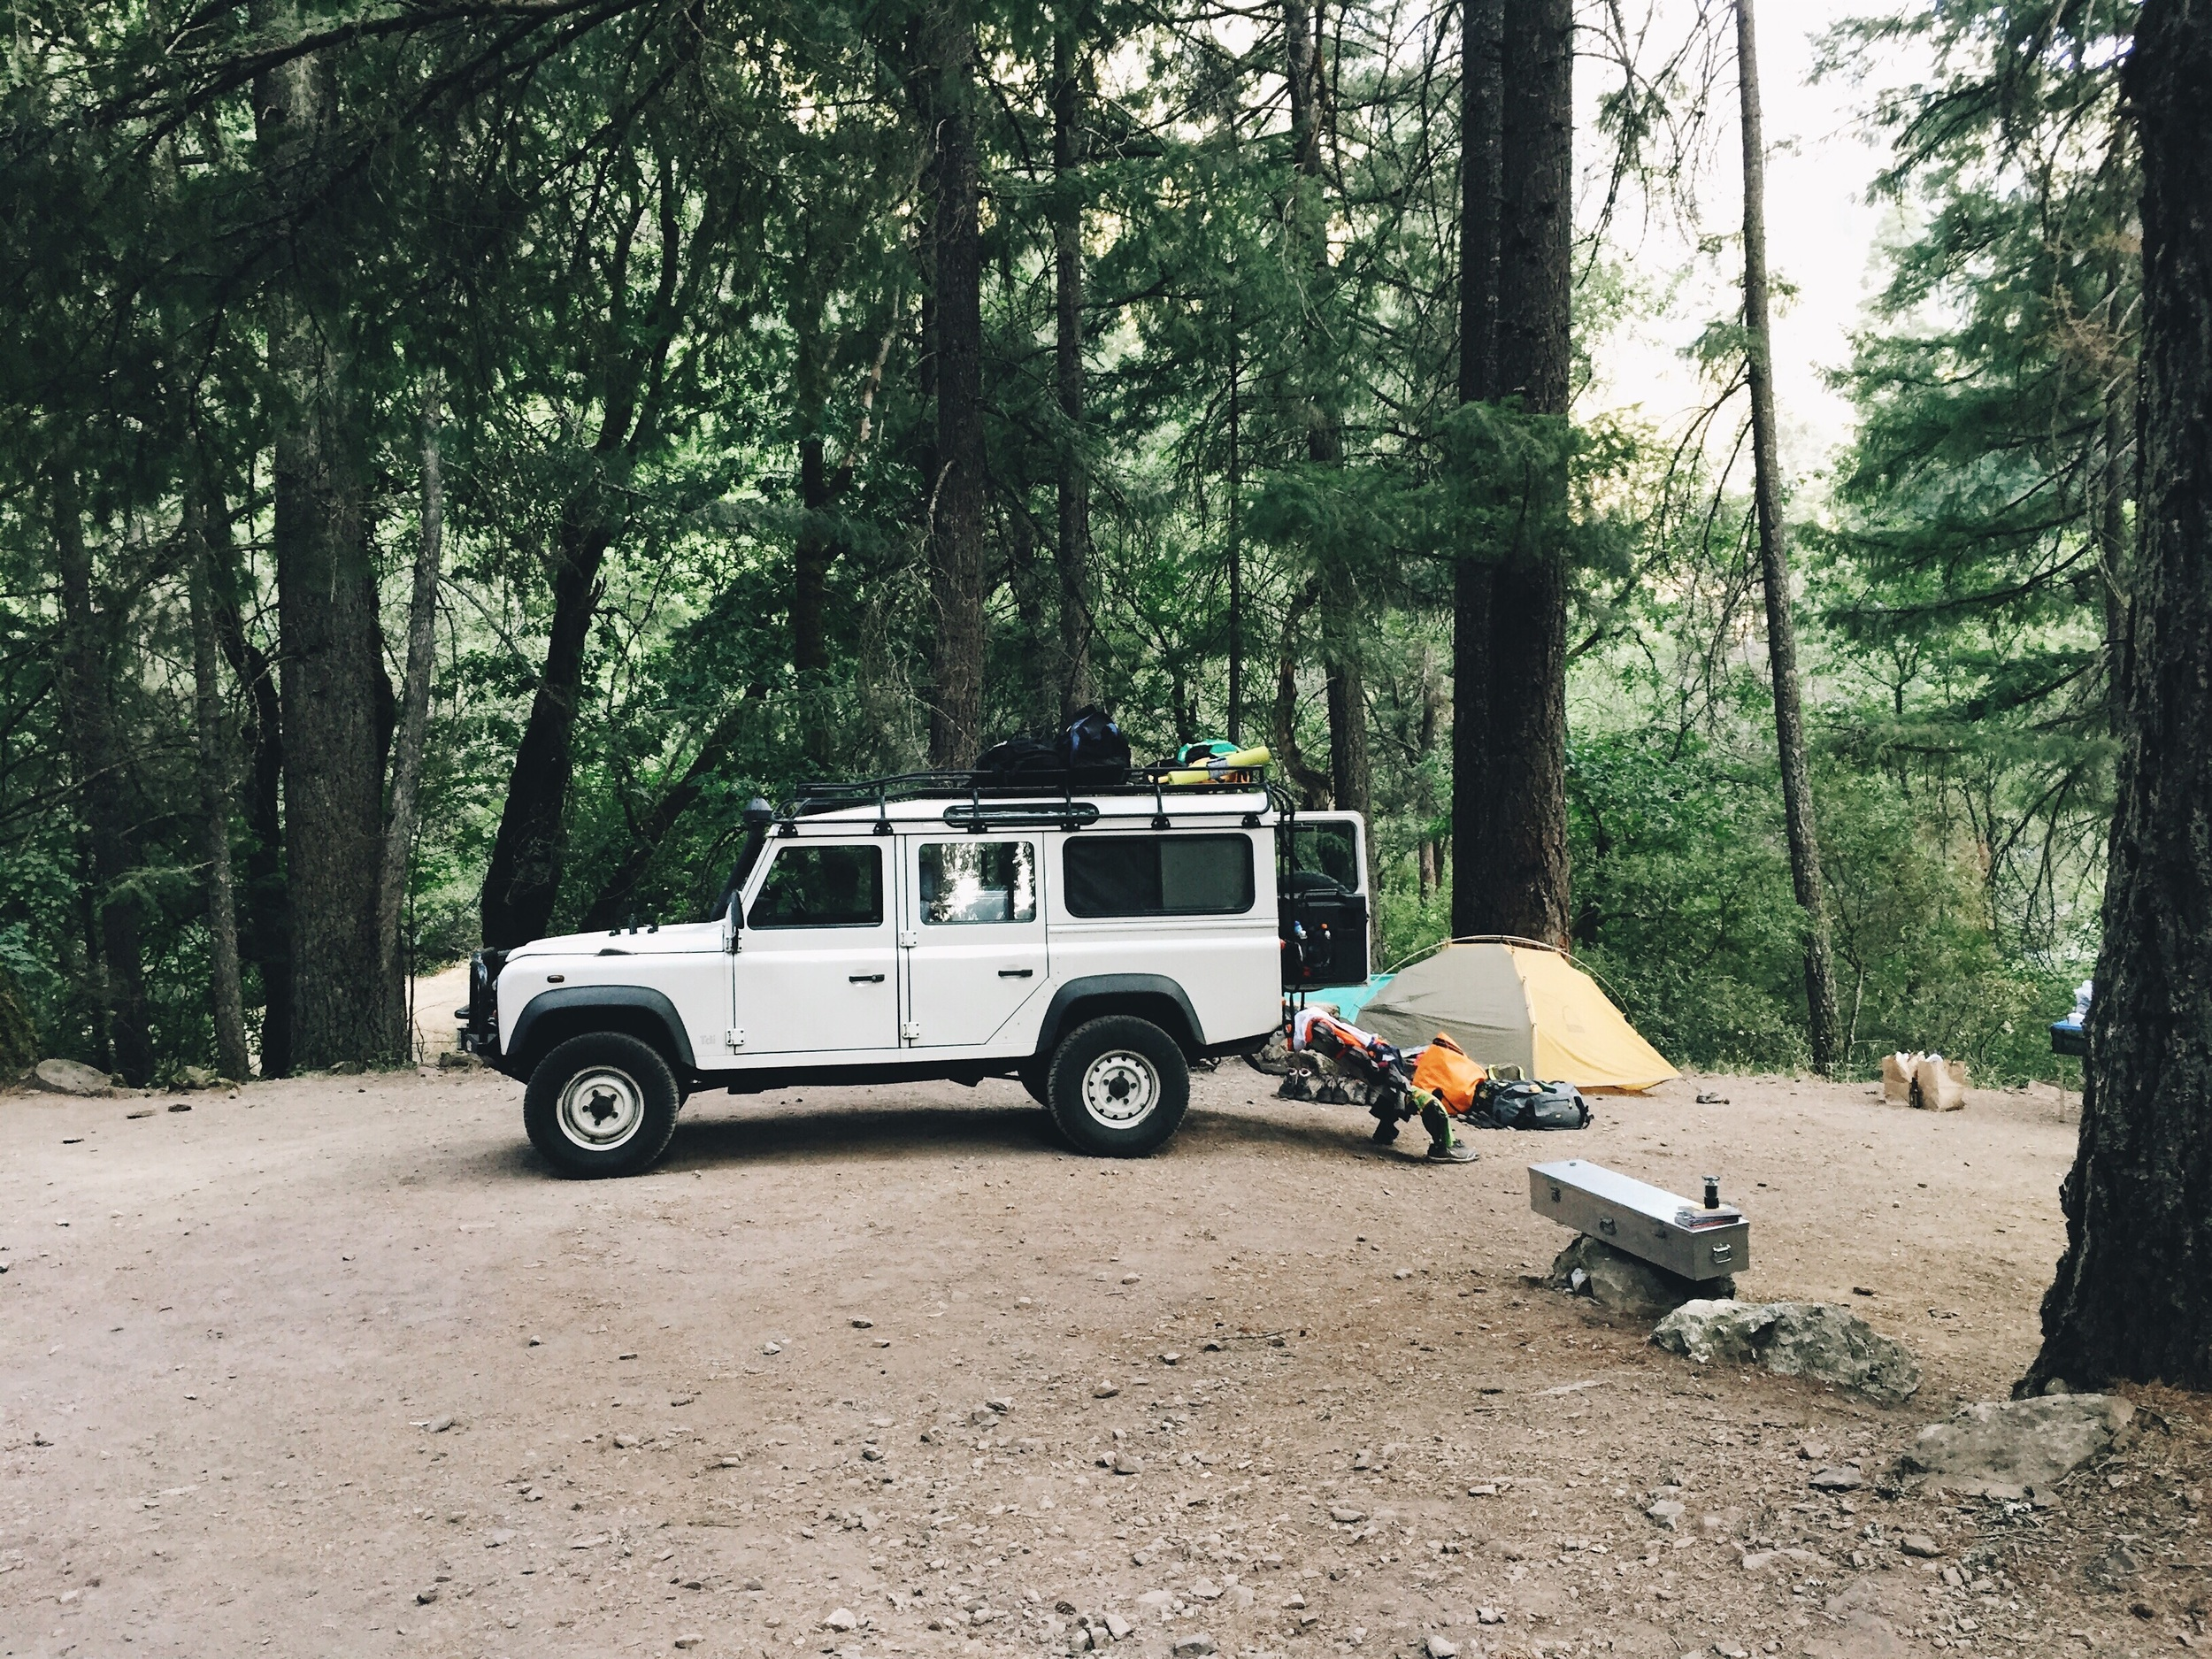 Saw a schmancy car at mccloud campground.